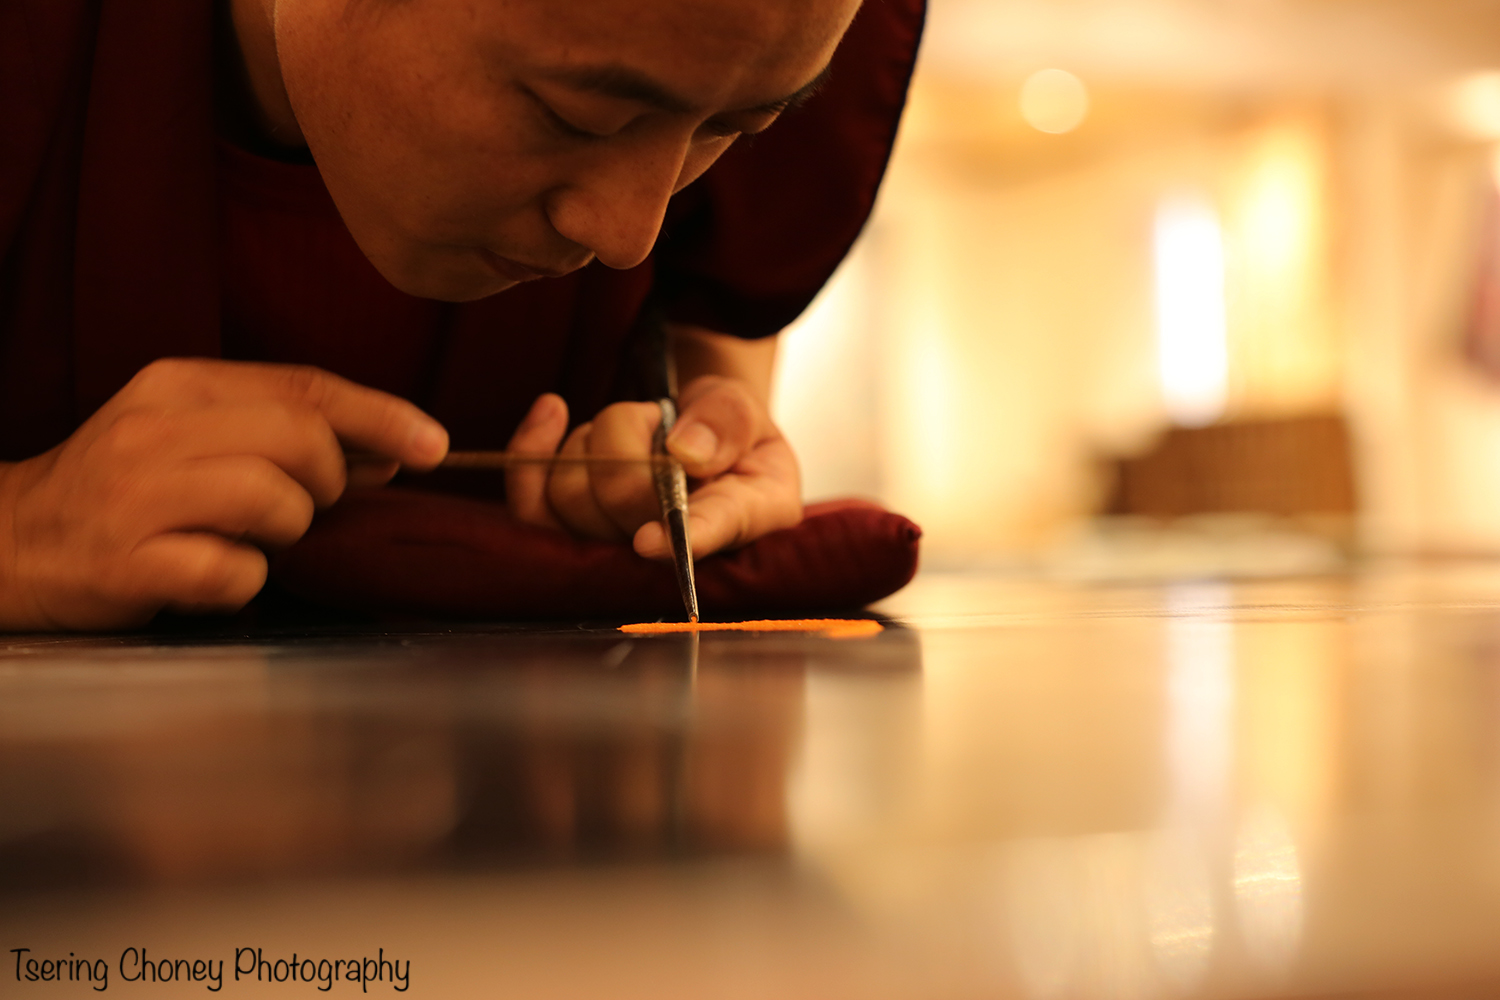 A monk from the Drepung Losling Monastery pours sand to create a Sand Mandala at Seret & Sons Gallery.